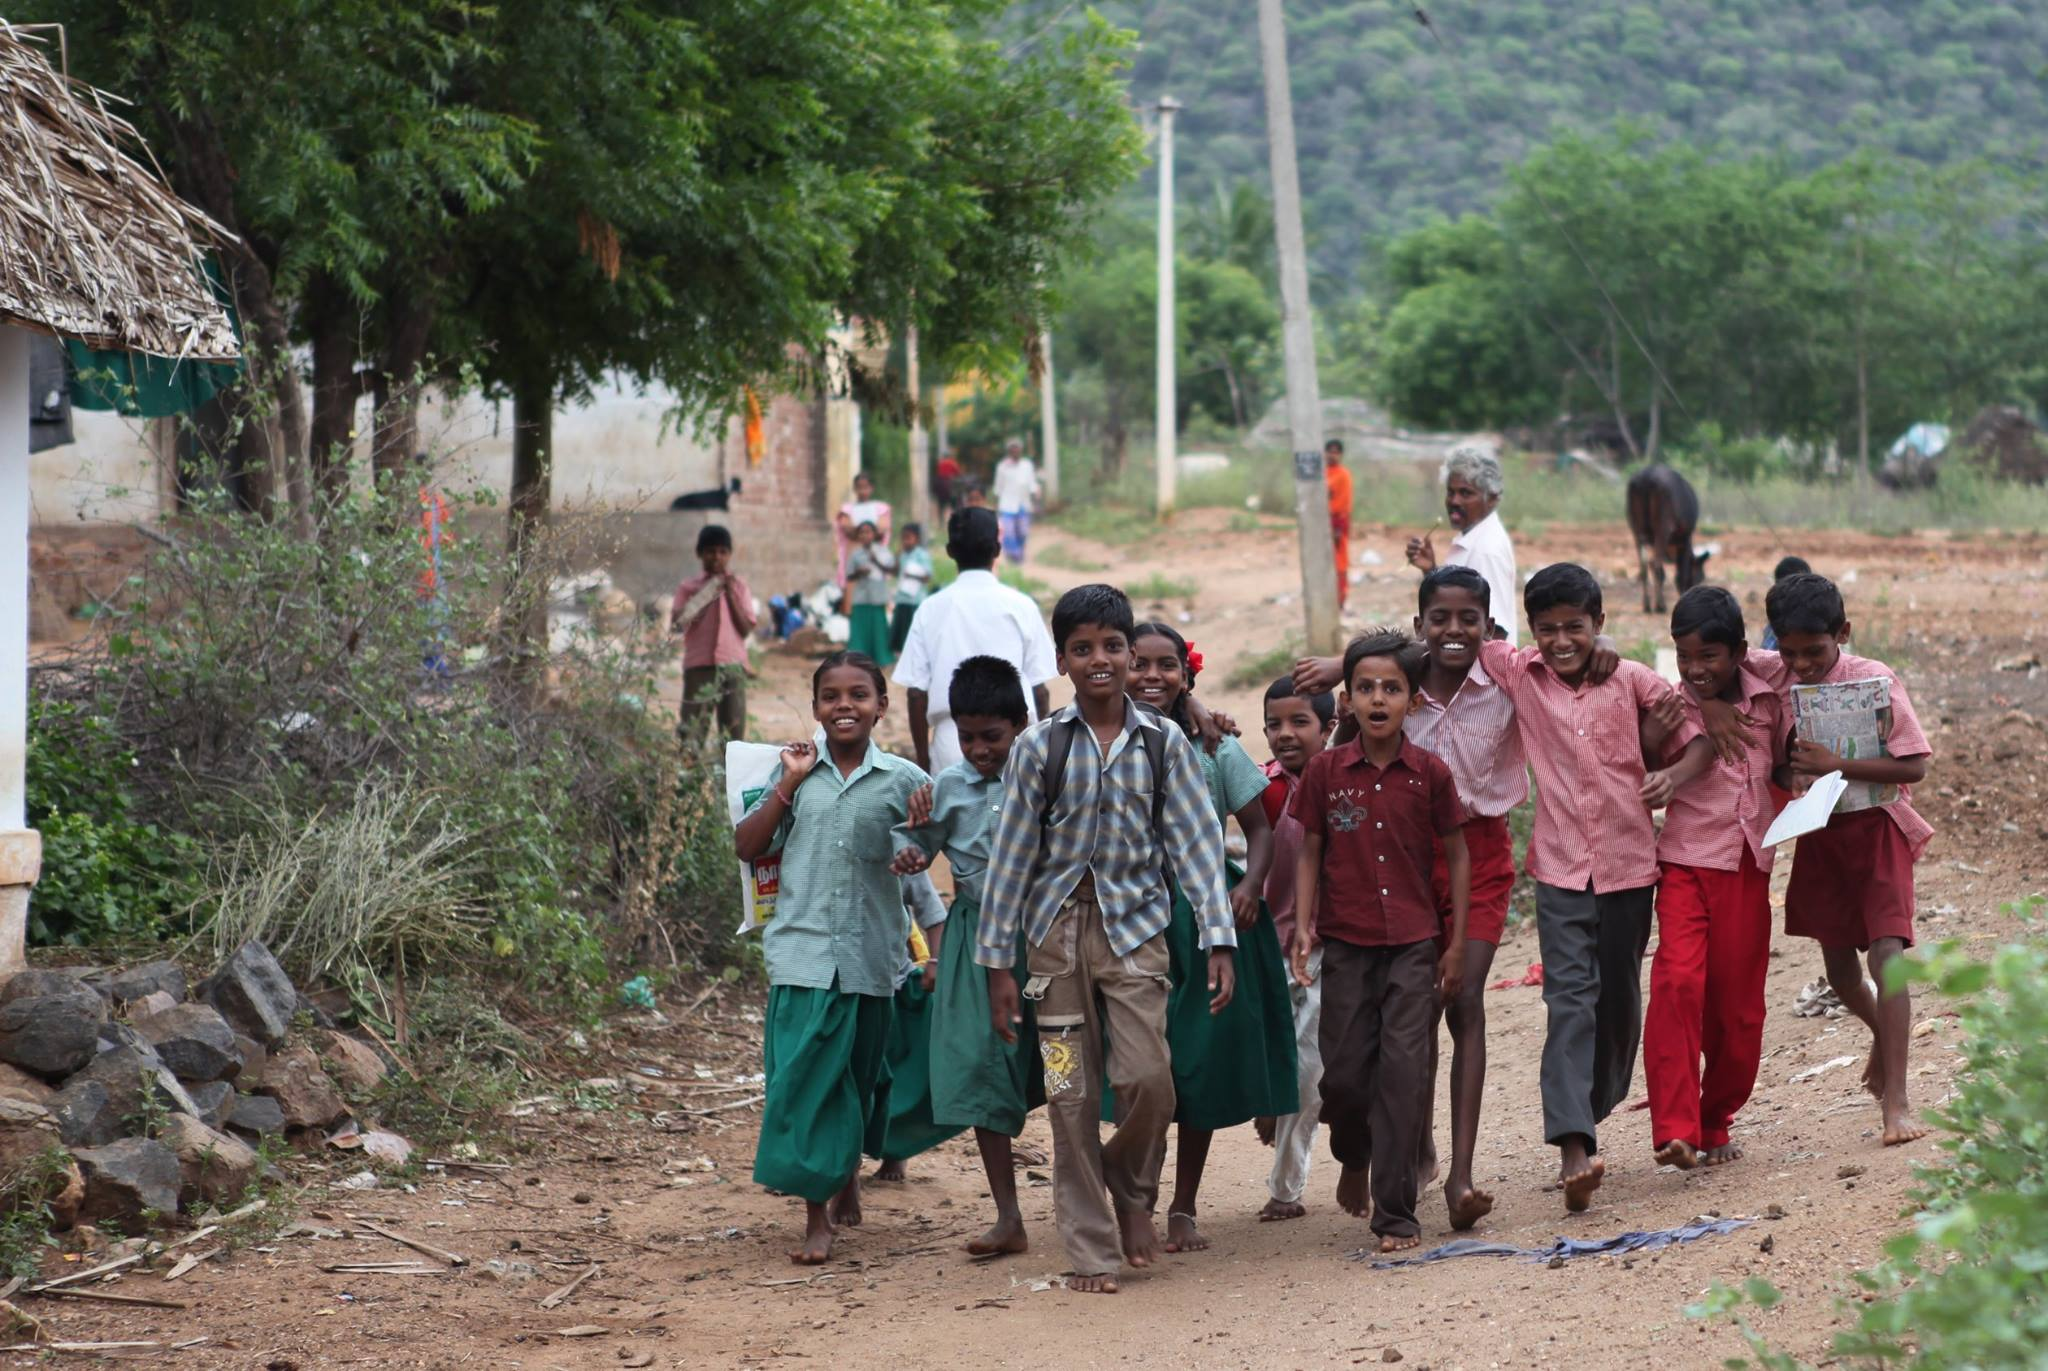 Joy for India: a matching campaign for children in India